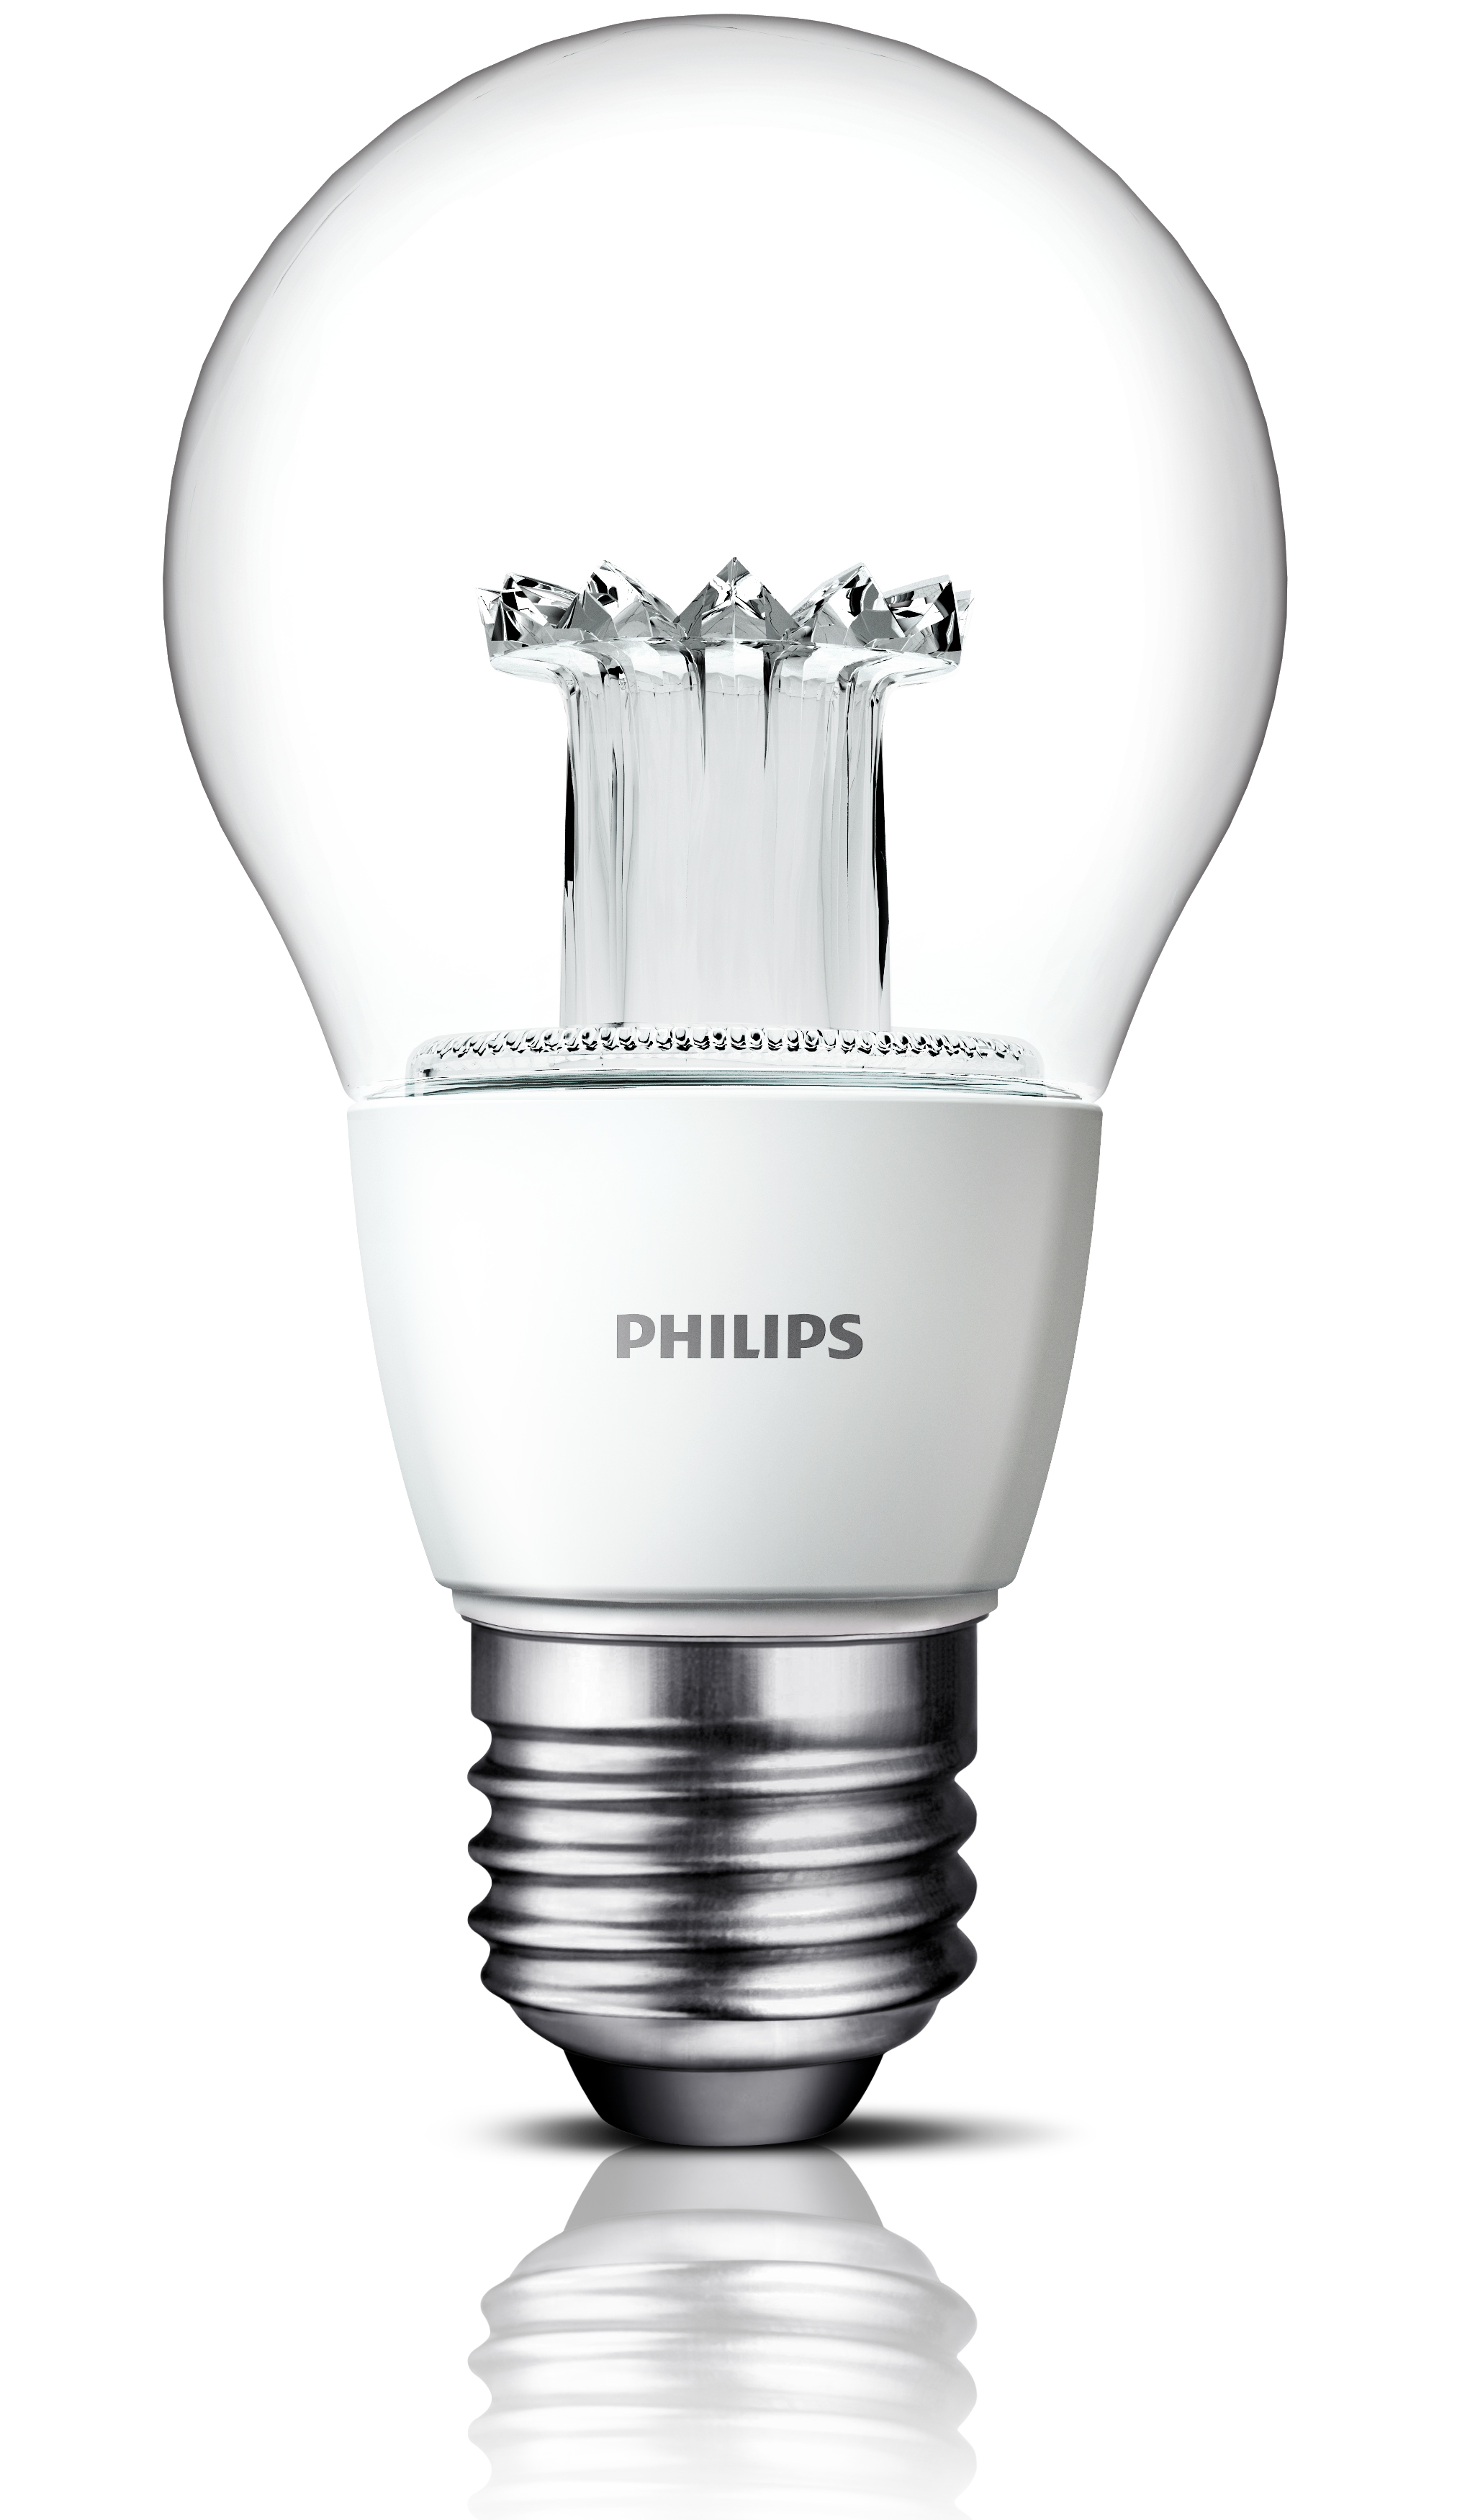 super led light new philips le lighting inspirational bulbs bright lights brightest bulb compromise hps of flood overview outdoor destiny